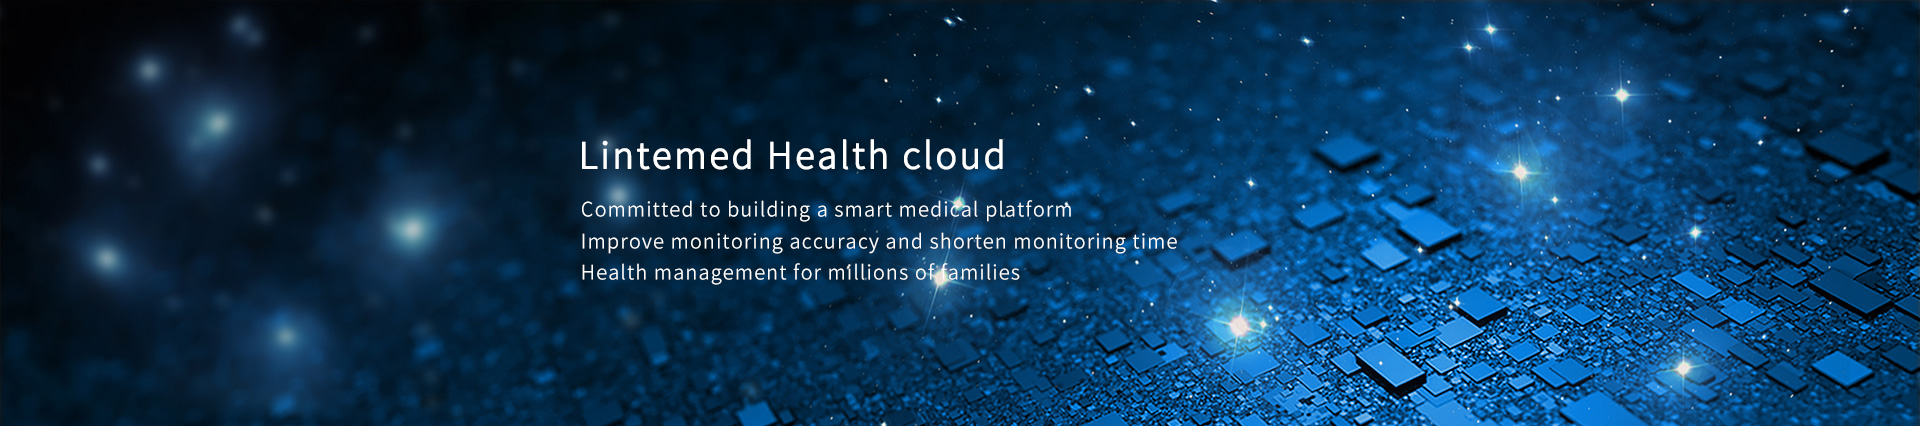 Healthy Cloud App